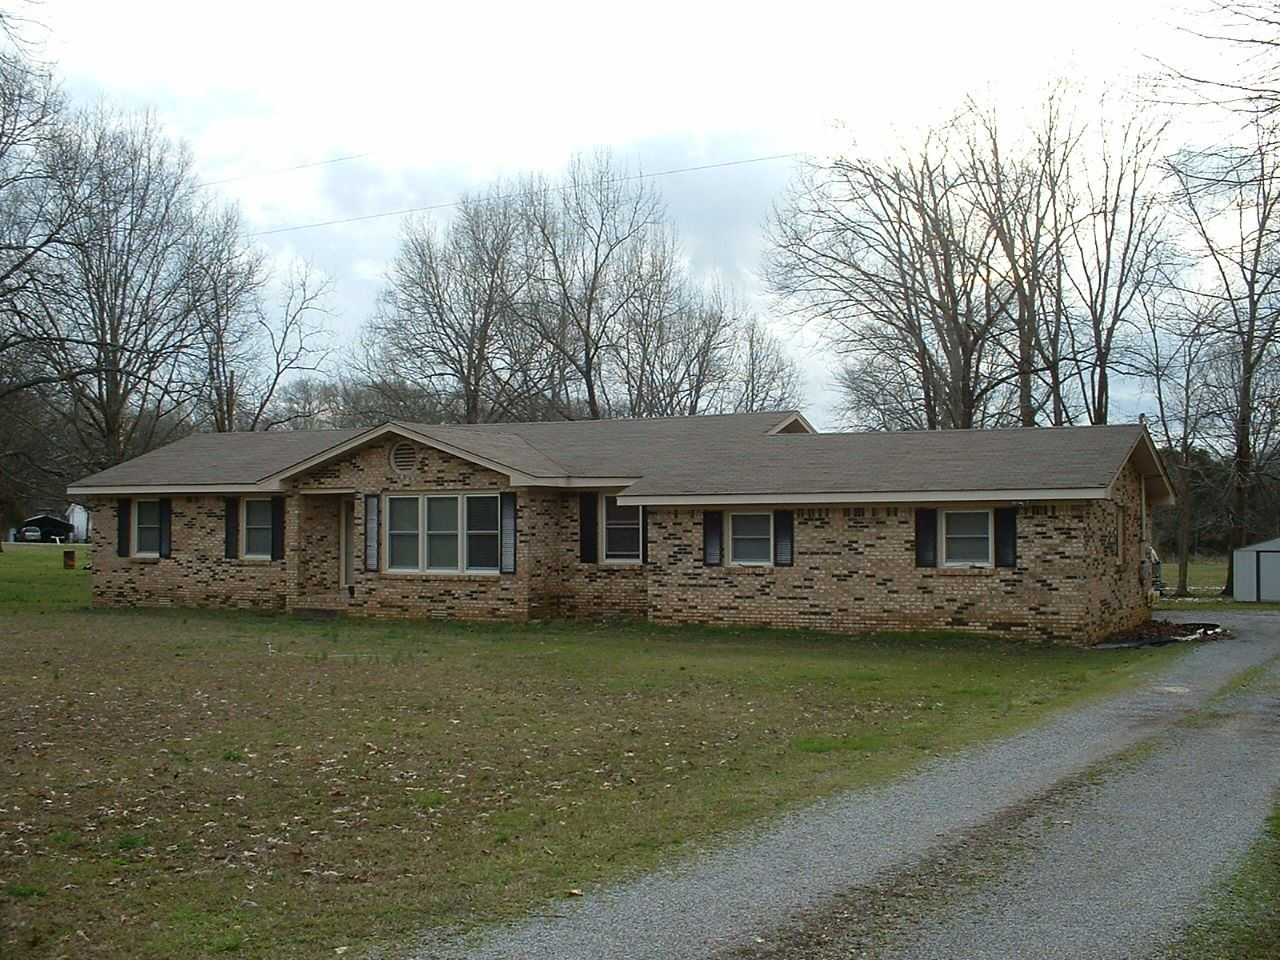 107 Ledbetter St, Shelbyville, TN 37160 - MLS#: 2132076